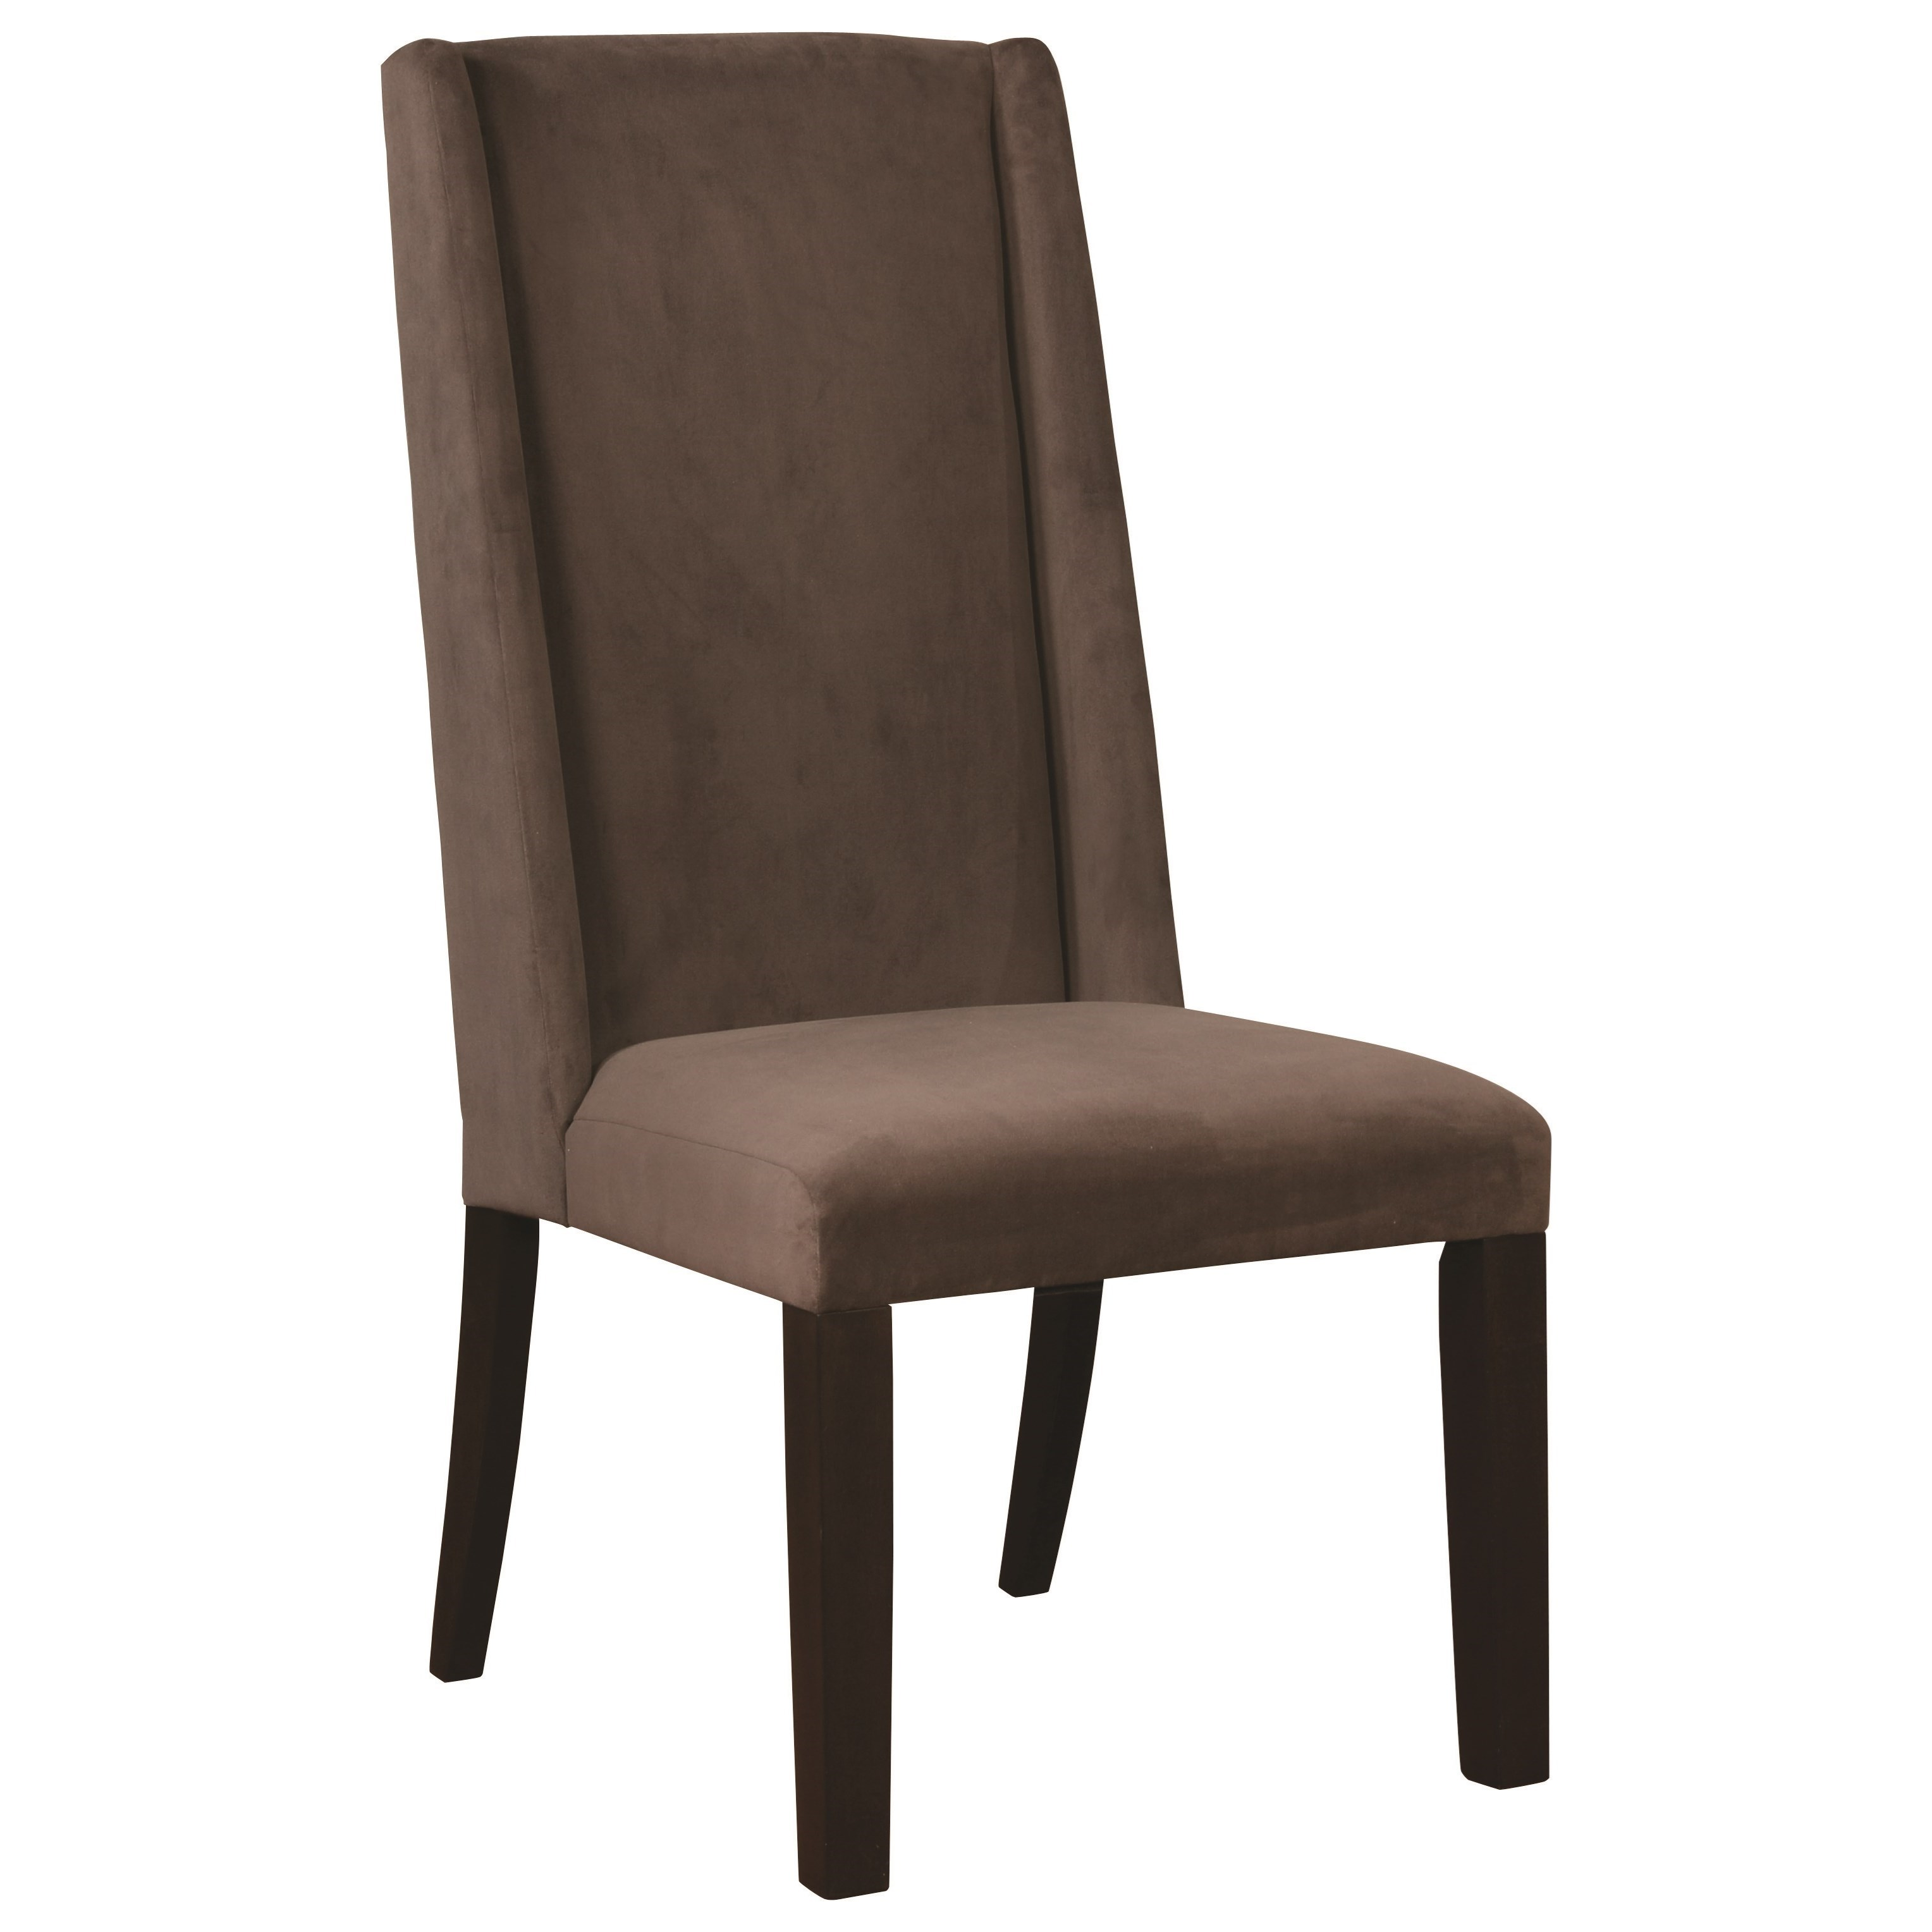 Scott Living 10312 Parson Chair - Item Number: 103128